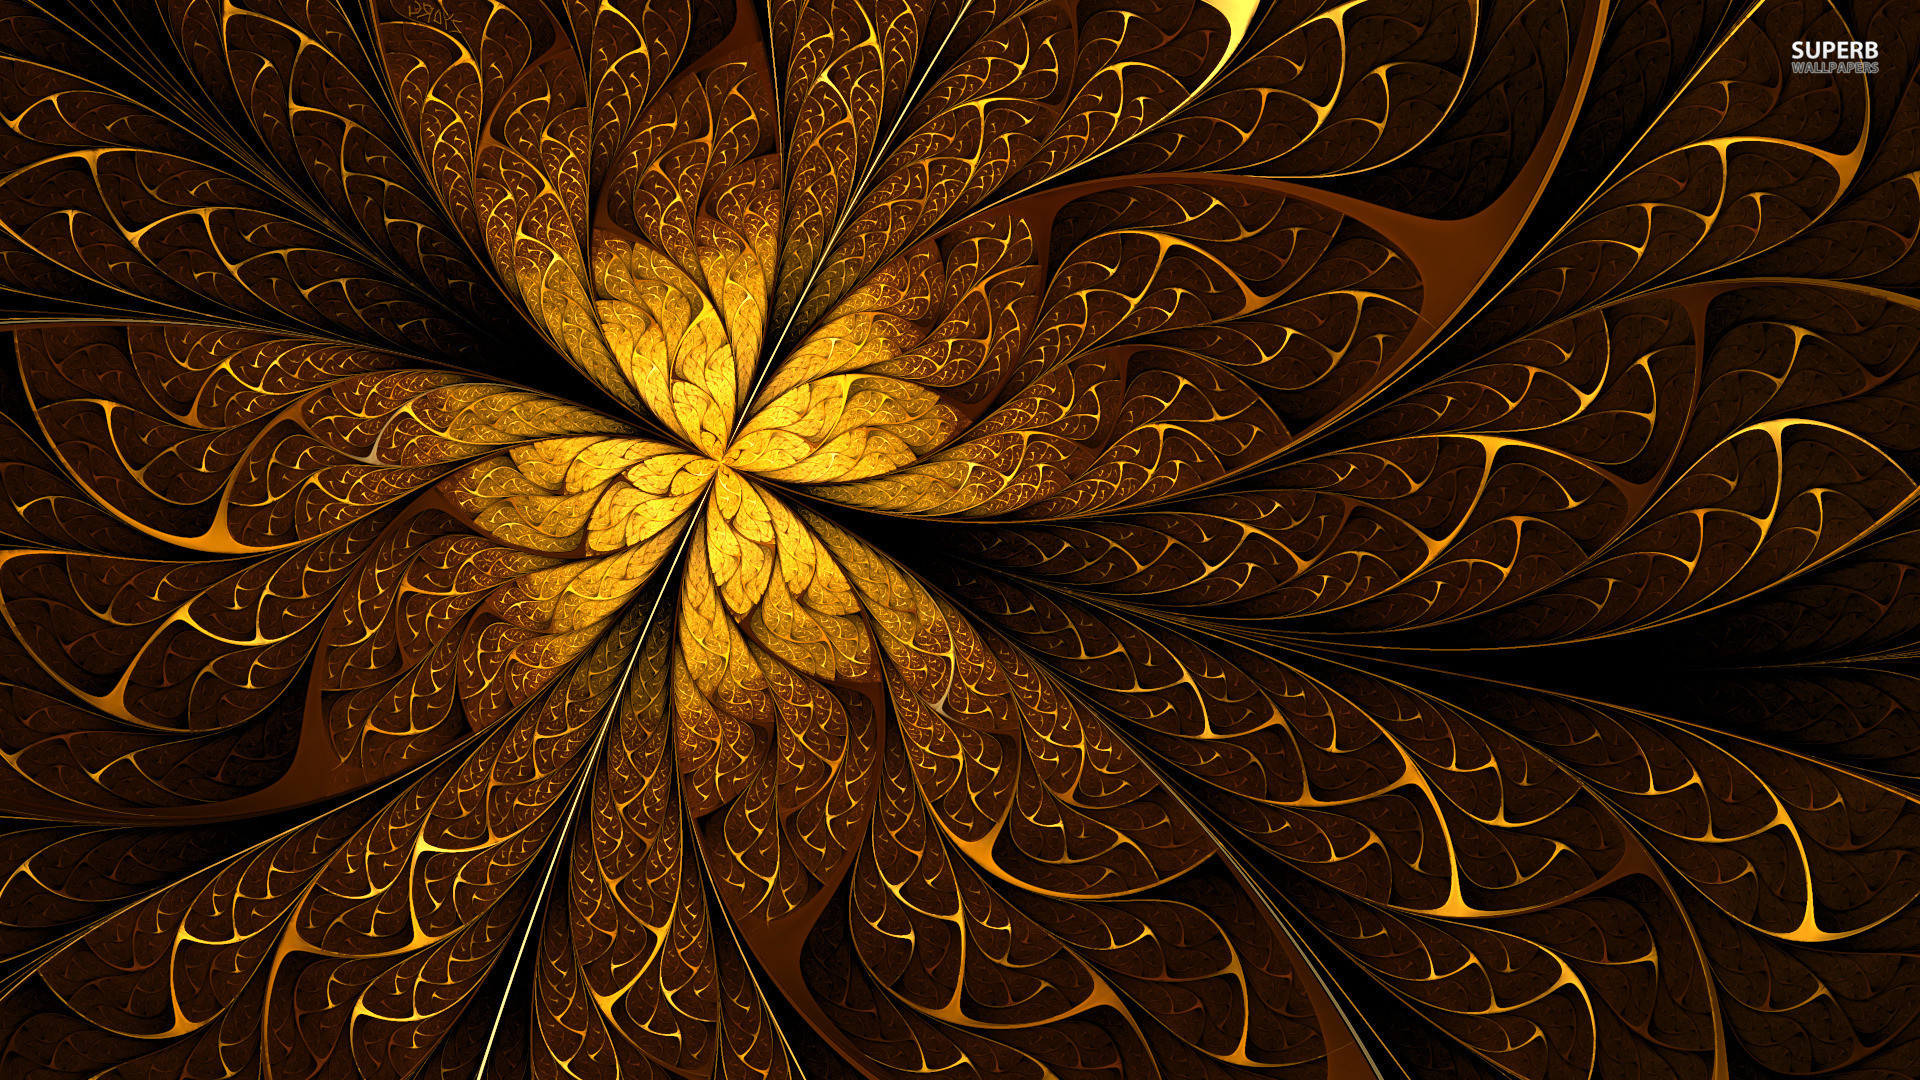 Abstract Swirls Windows 8.1 Theme And Wallpaper   All For Windows 10 .